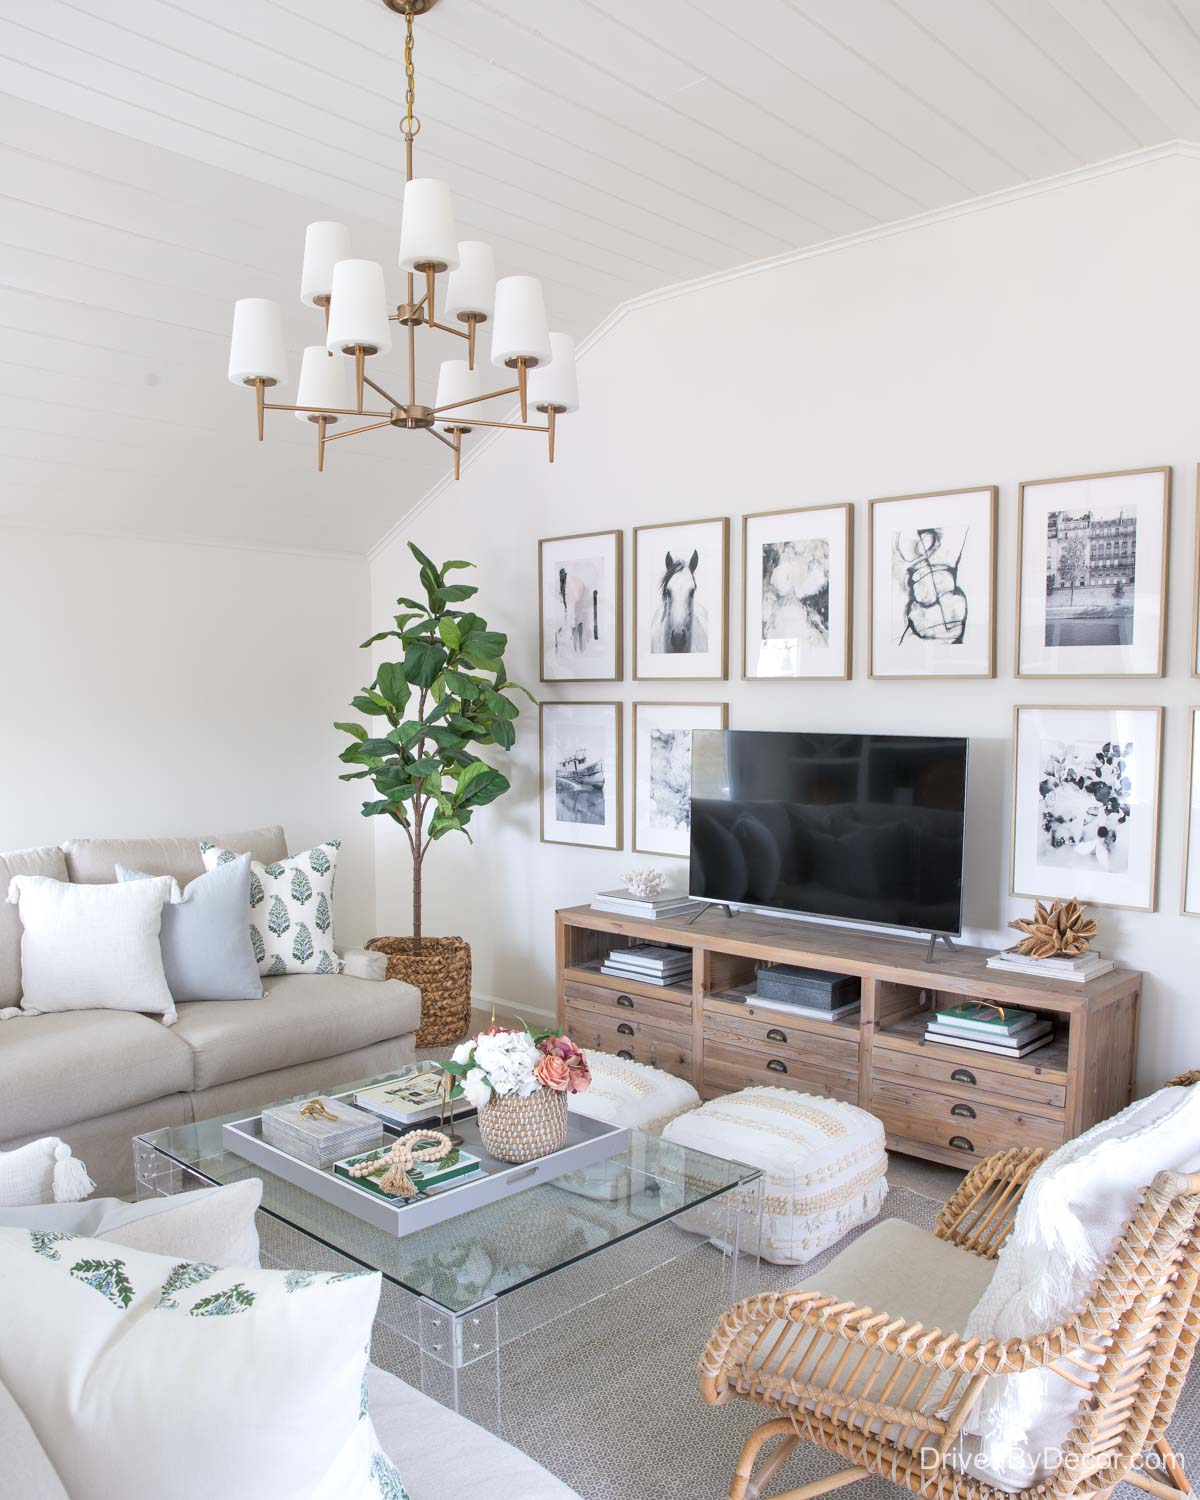 Home remodel: Our family room after remodeling!